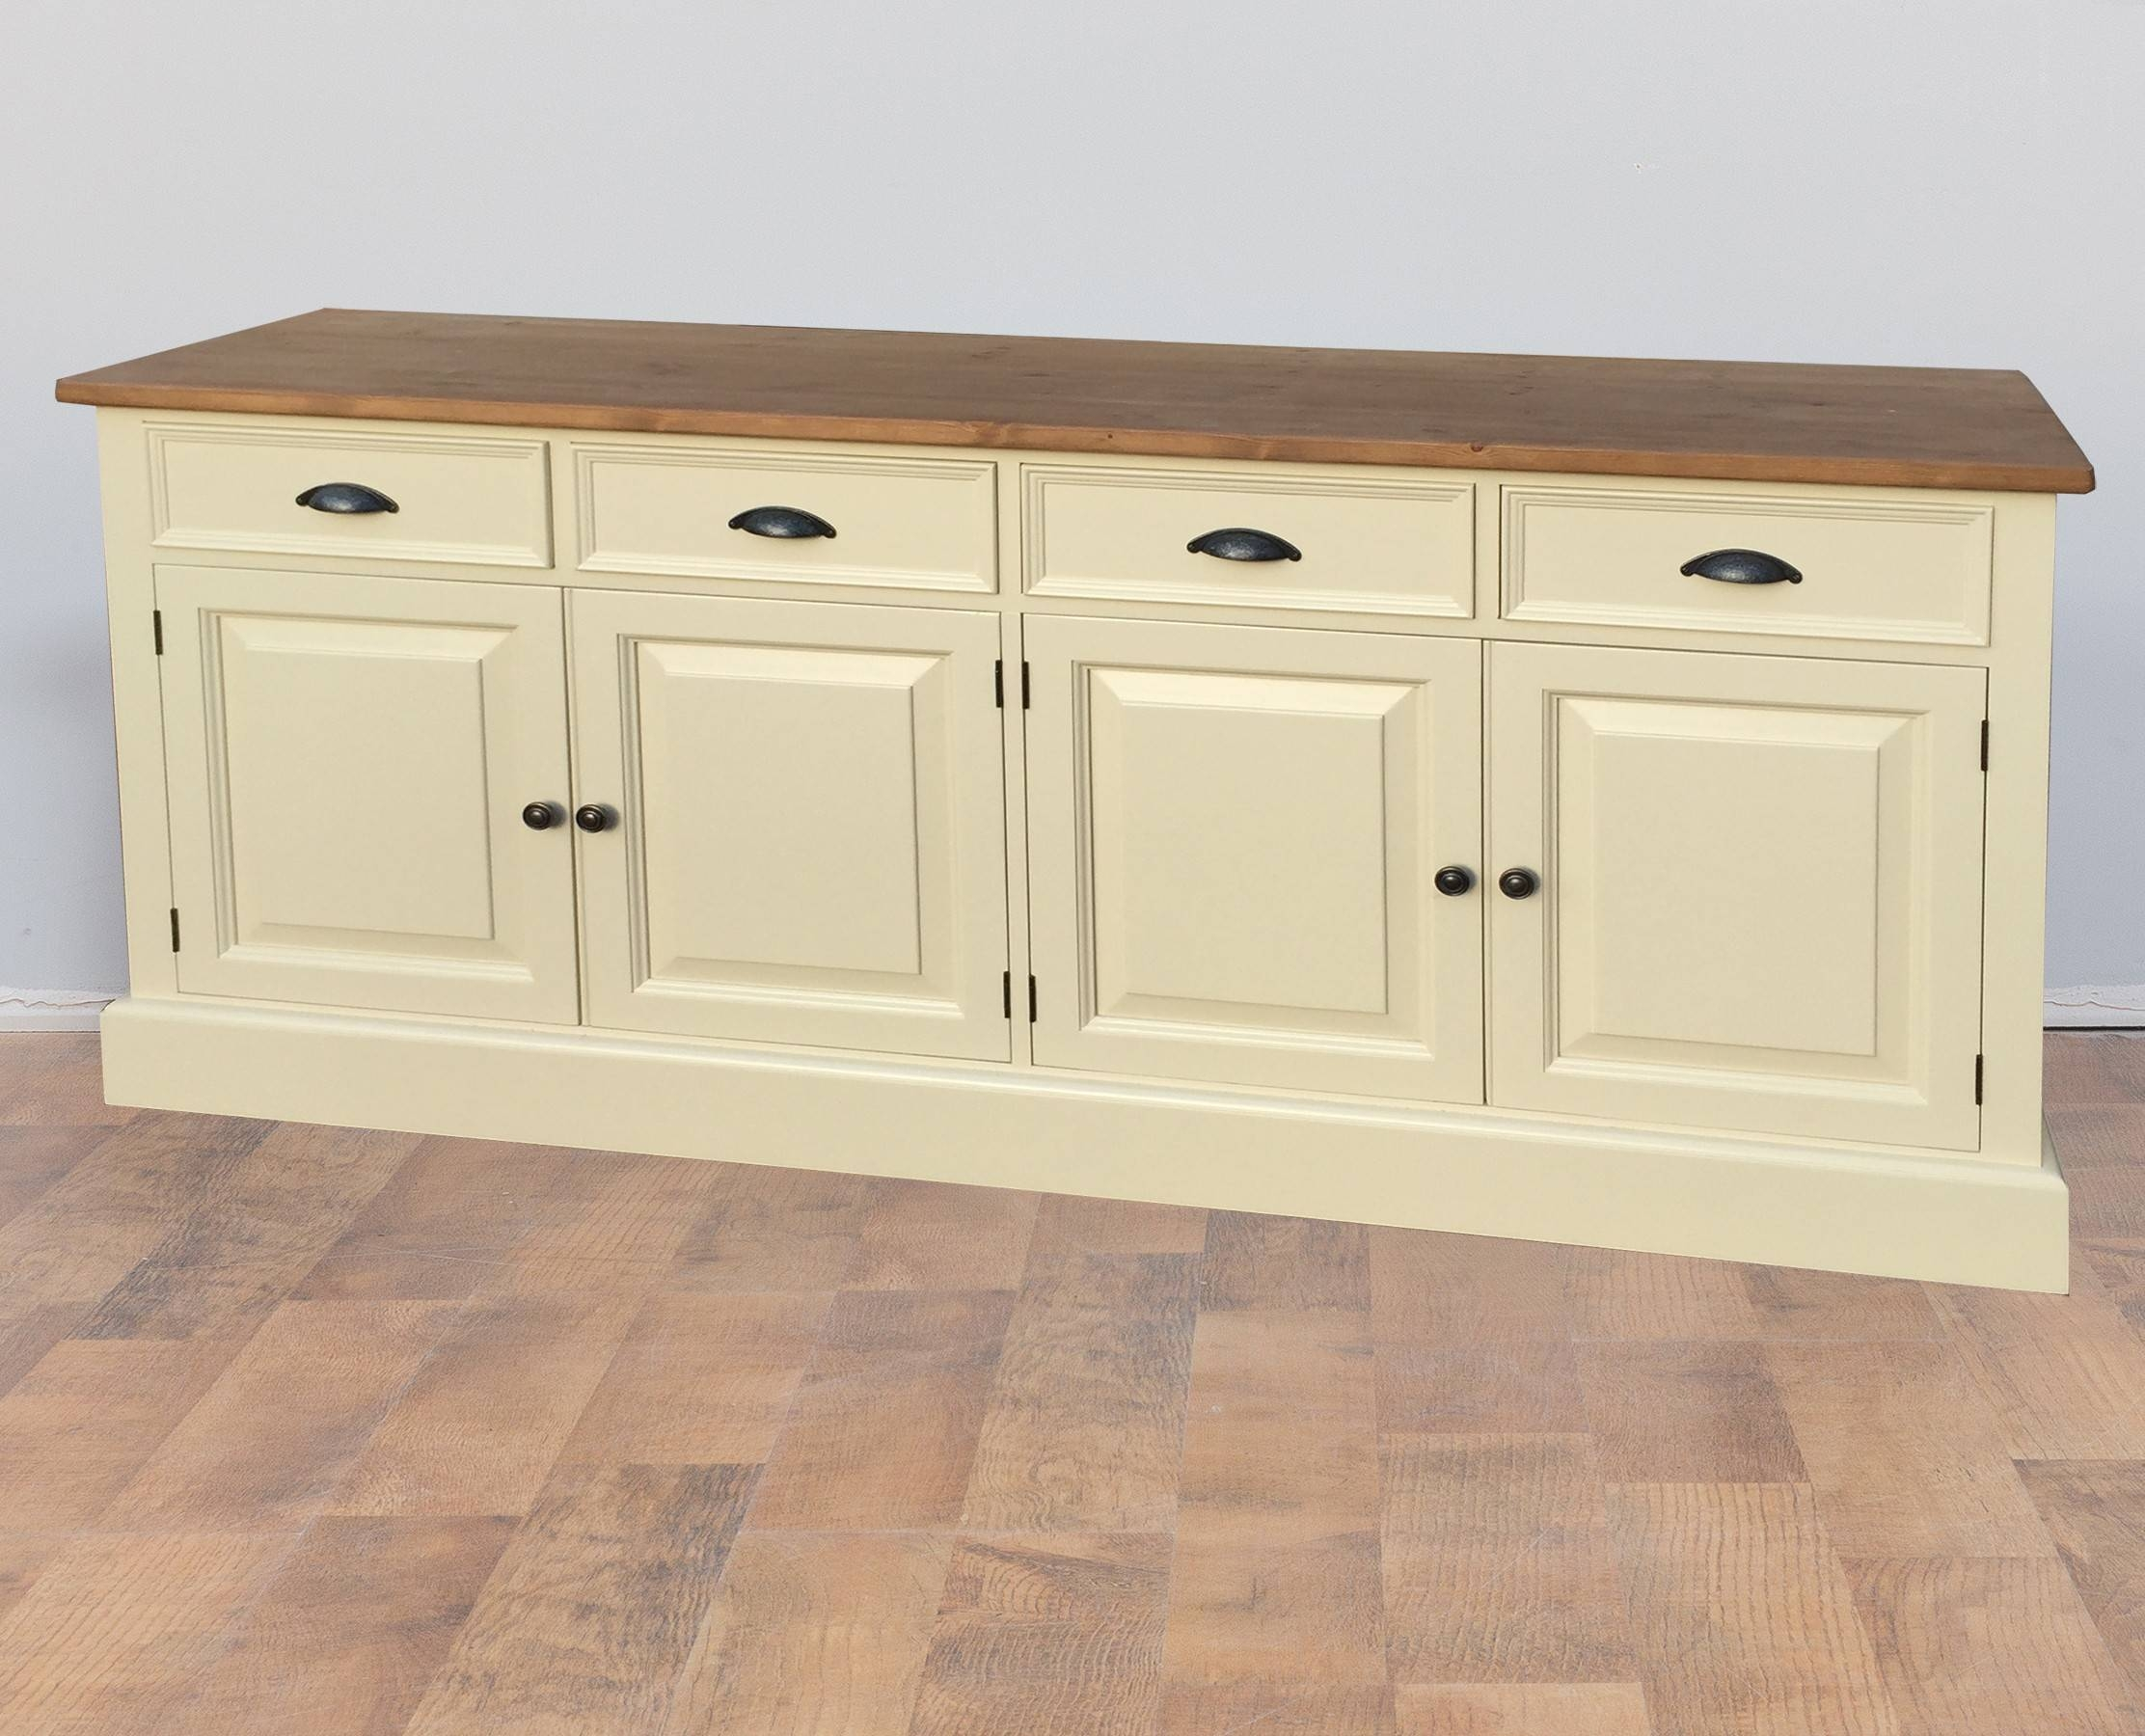 Sideboards | Pine, Oak & Painted Sideboards | Furniture4Yourhome in Sideboards For Sale (Image 21 of 30)